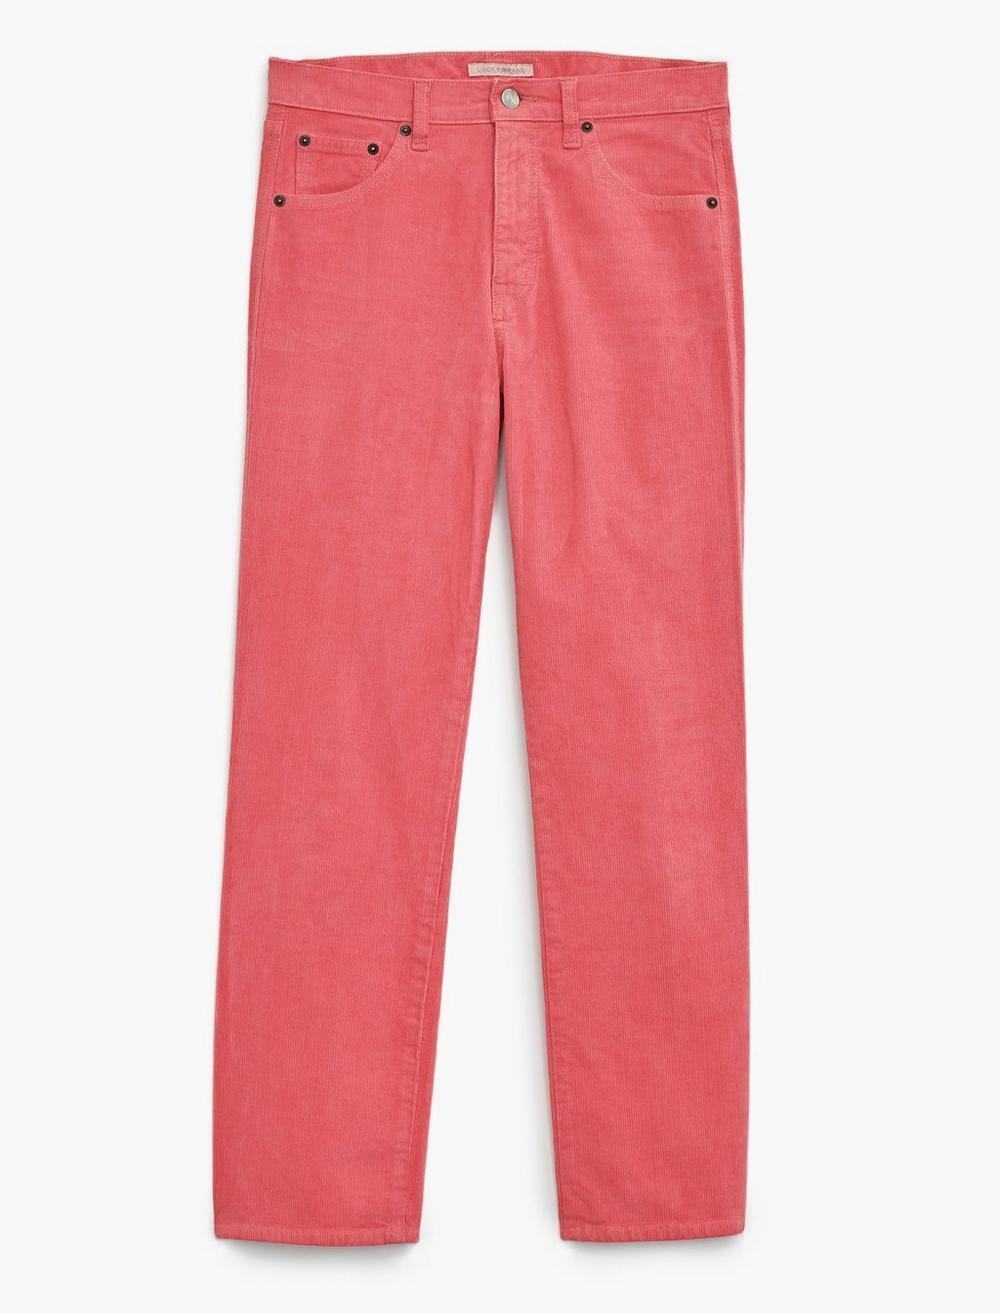 MID RISE AUTHENTIC STRAIGHT CROP CORDUROY JEAN, image 7